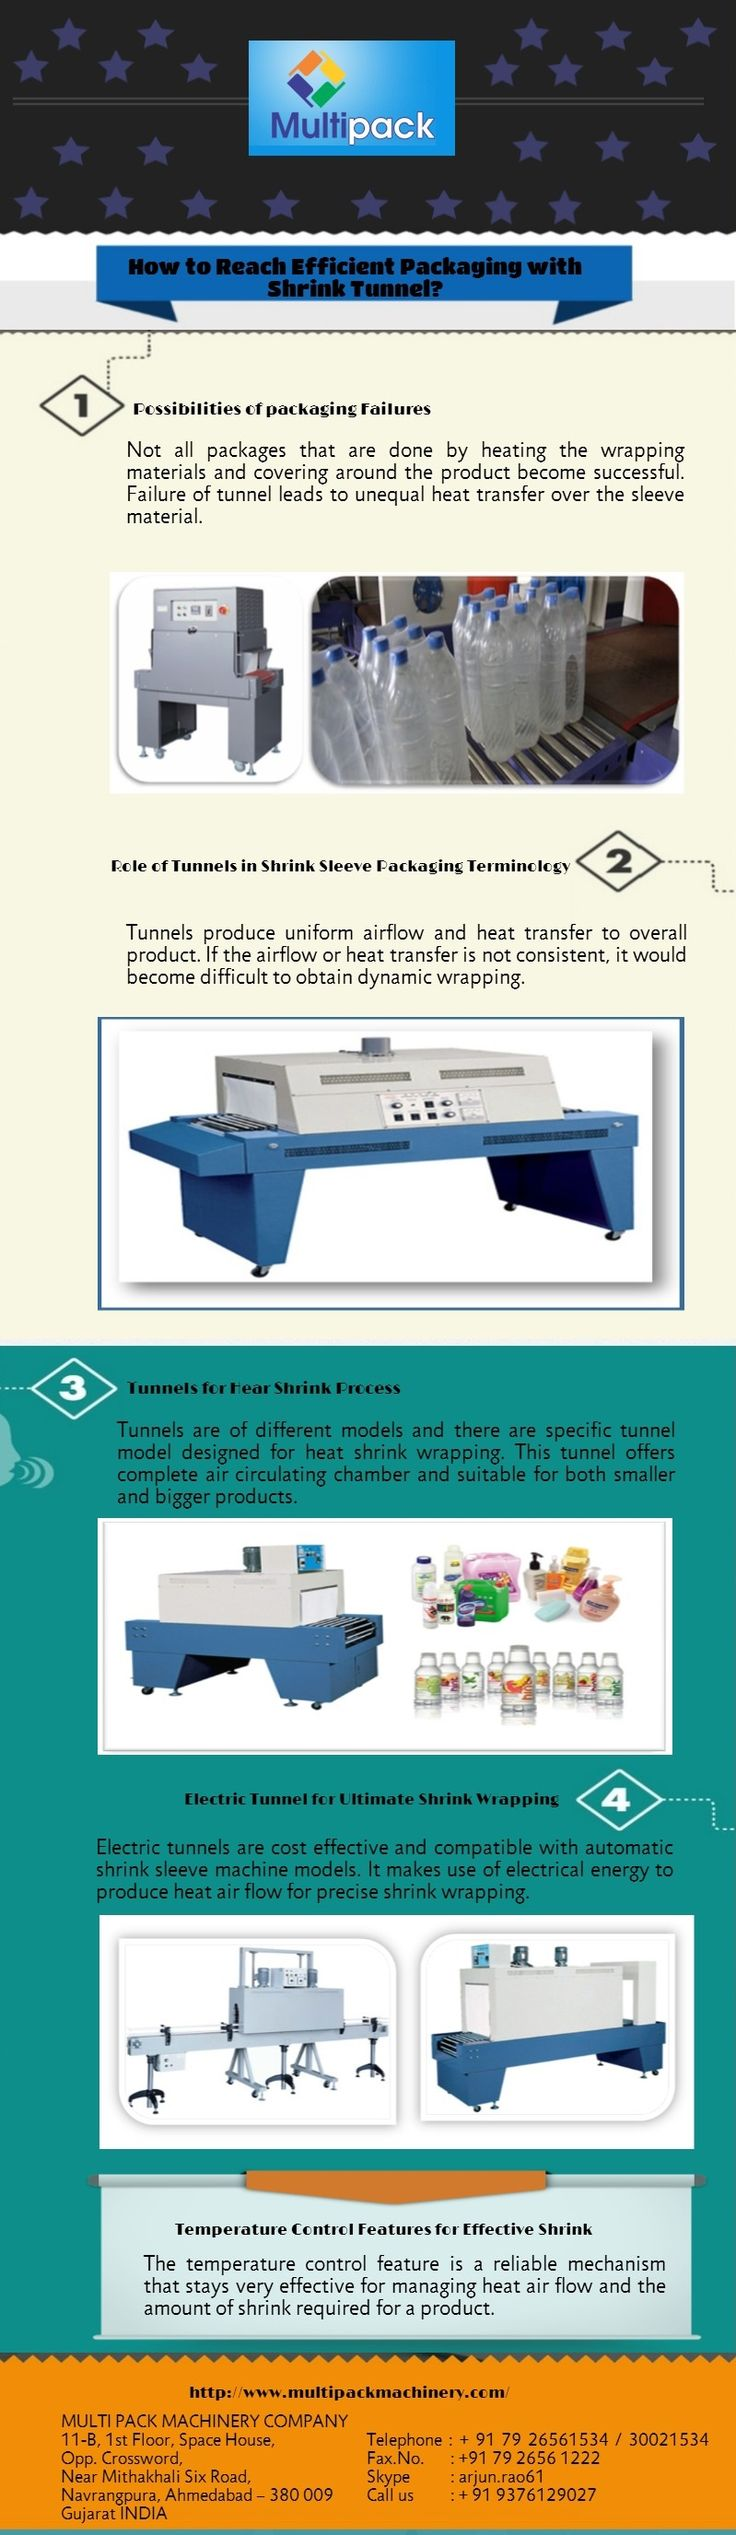 Find out Infograph that contains information about how Packaging can be efficient with Shrink technology like Shrink Tunnel - http://www.multipackmachinery.com/shrink-tunnel/ and shrink sleeve applicator.